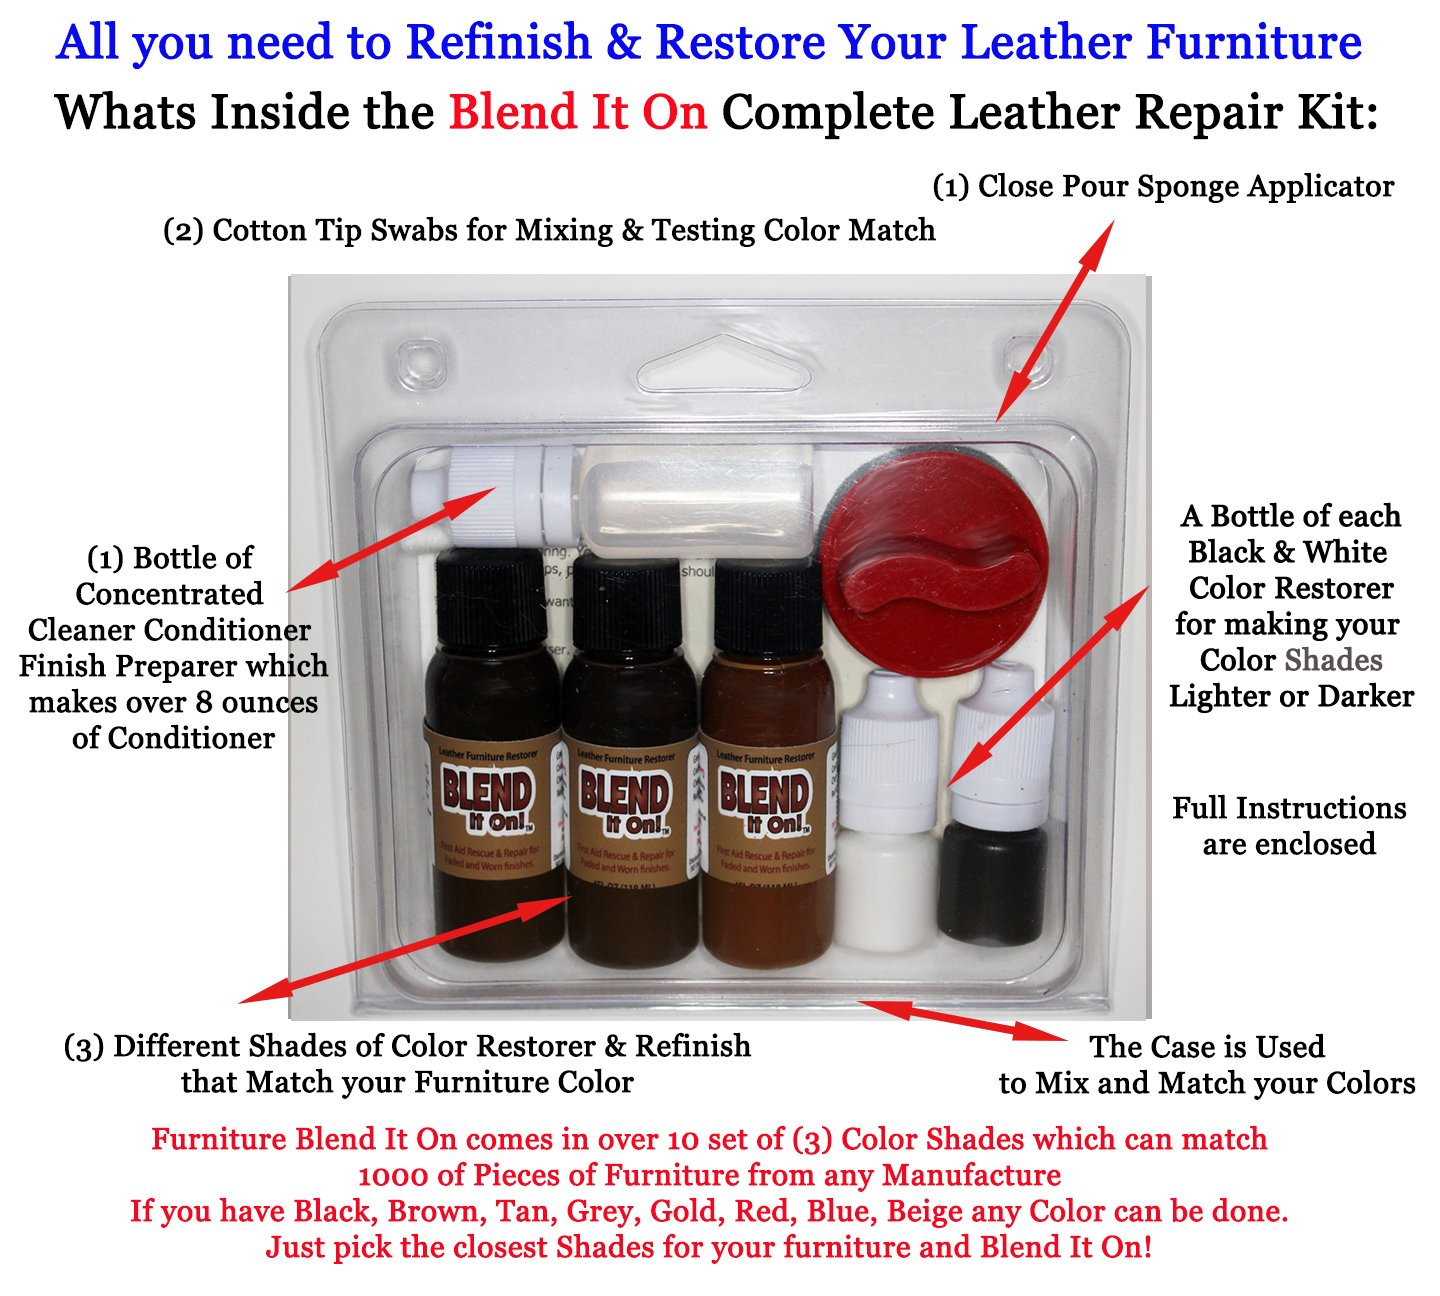 Leather Max Complete Leather Refinish, Restore, Recolor & Repair Kit/Now with 3 Color Shades to Blend with/Leather & Vinyl Refinish (Beach Mix) by BlendItOn (Image #3)